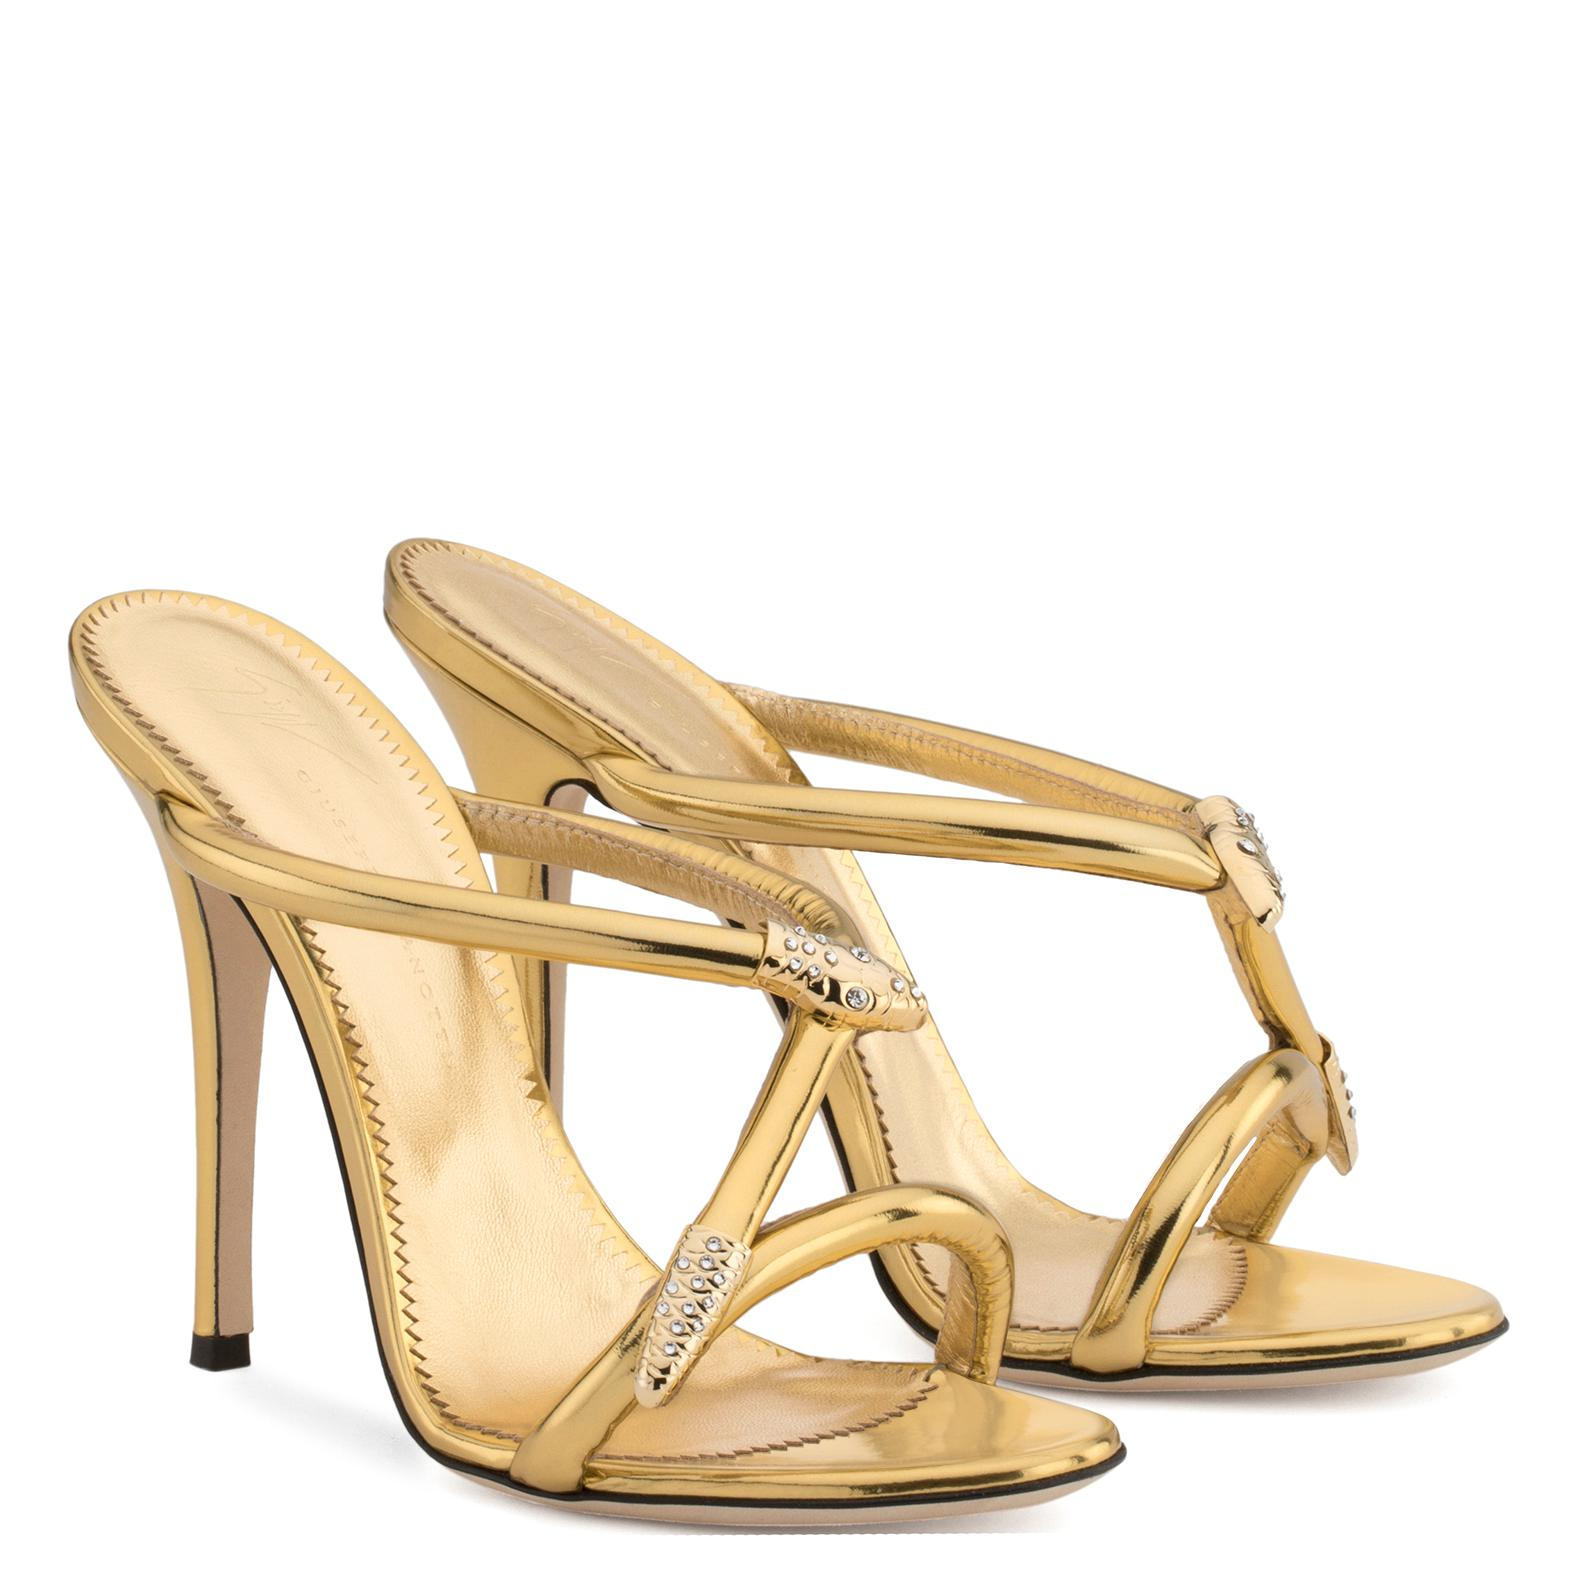 Giuseppe Zanotti Laminated leather sandal with snake accessory ALEESHA FWPJK